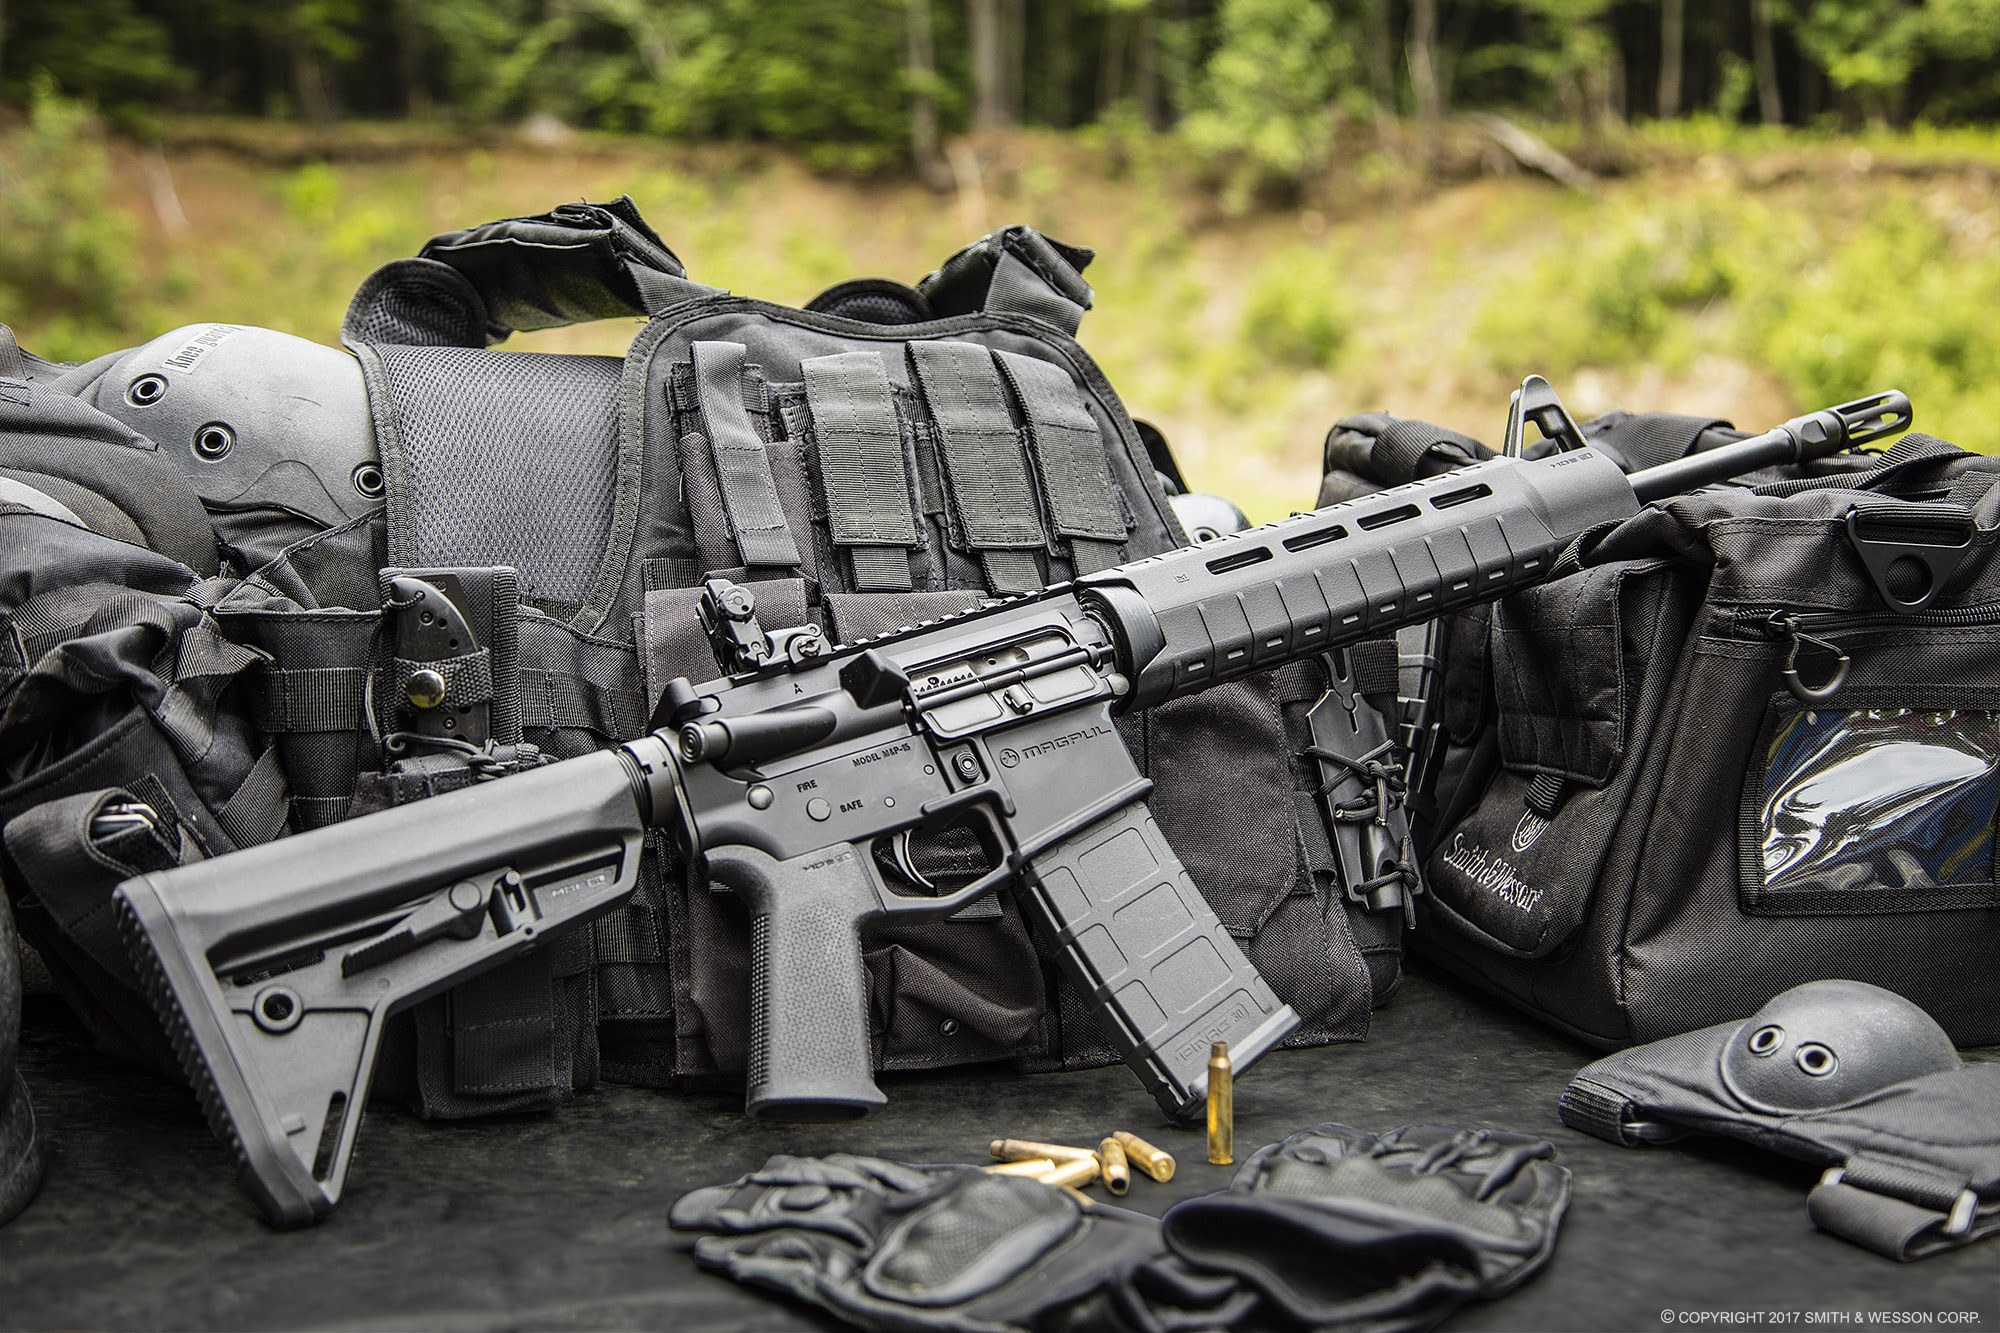 Smith & Wesson M&P15 MOE Black Rifle